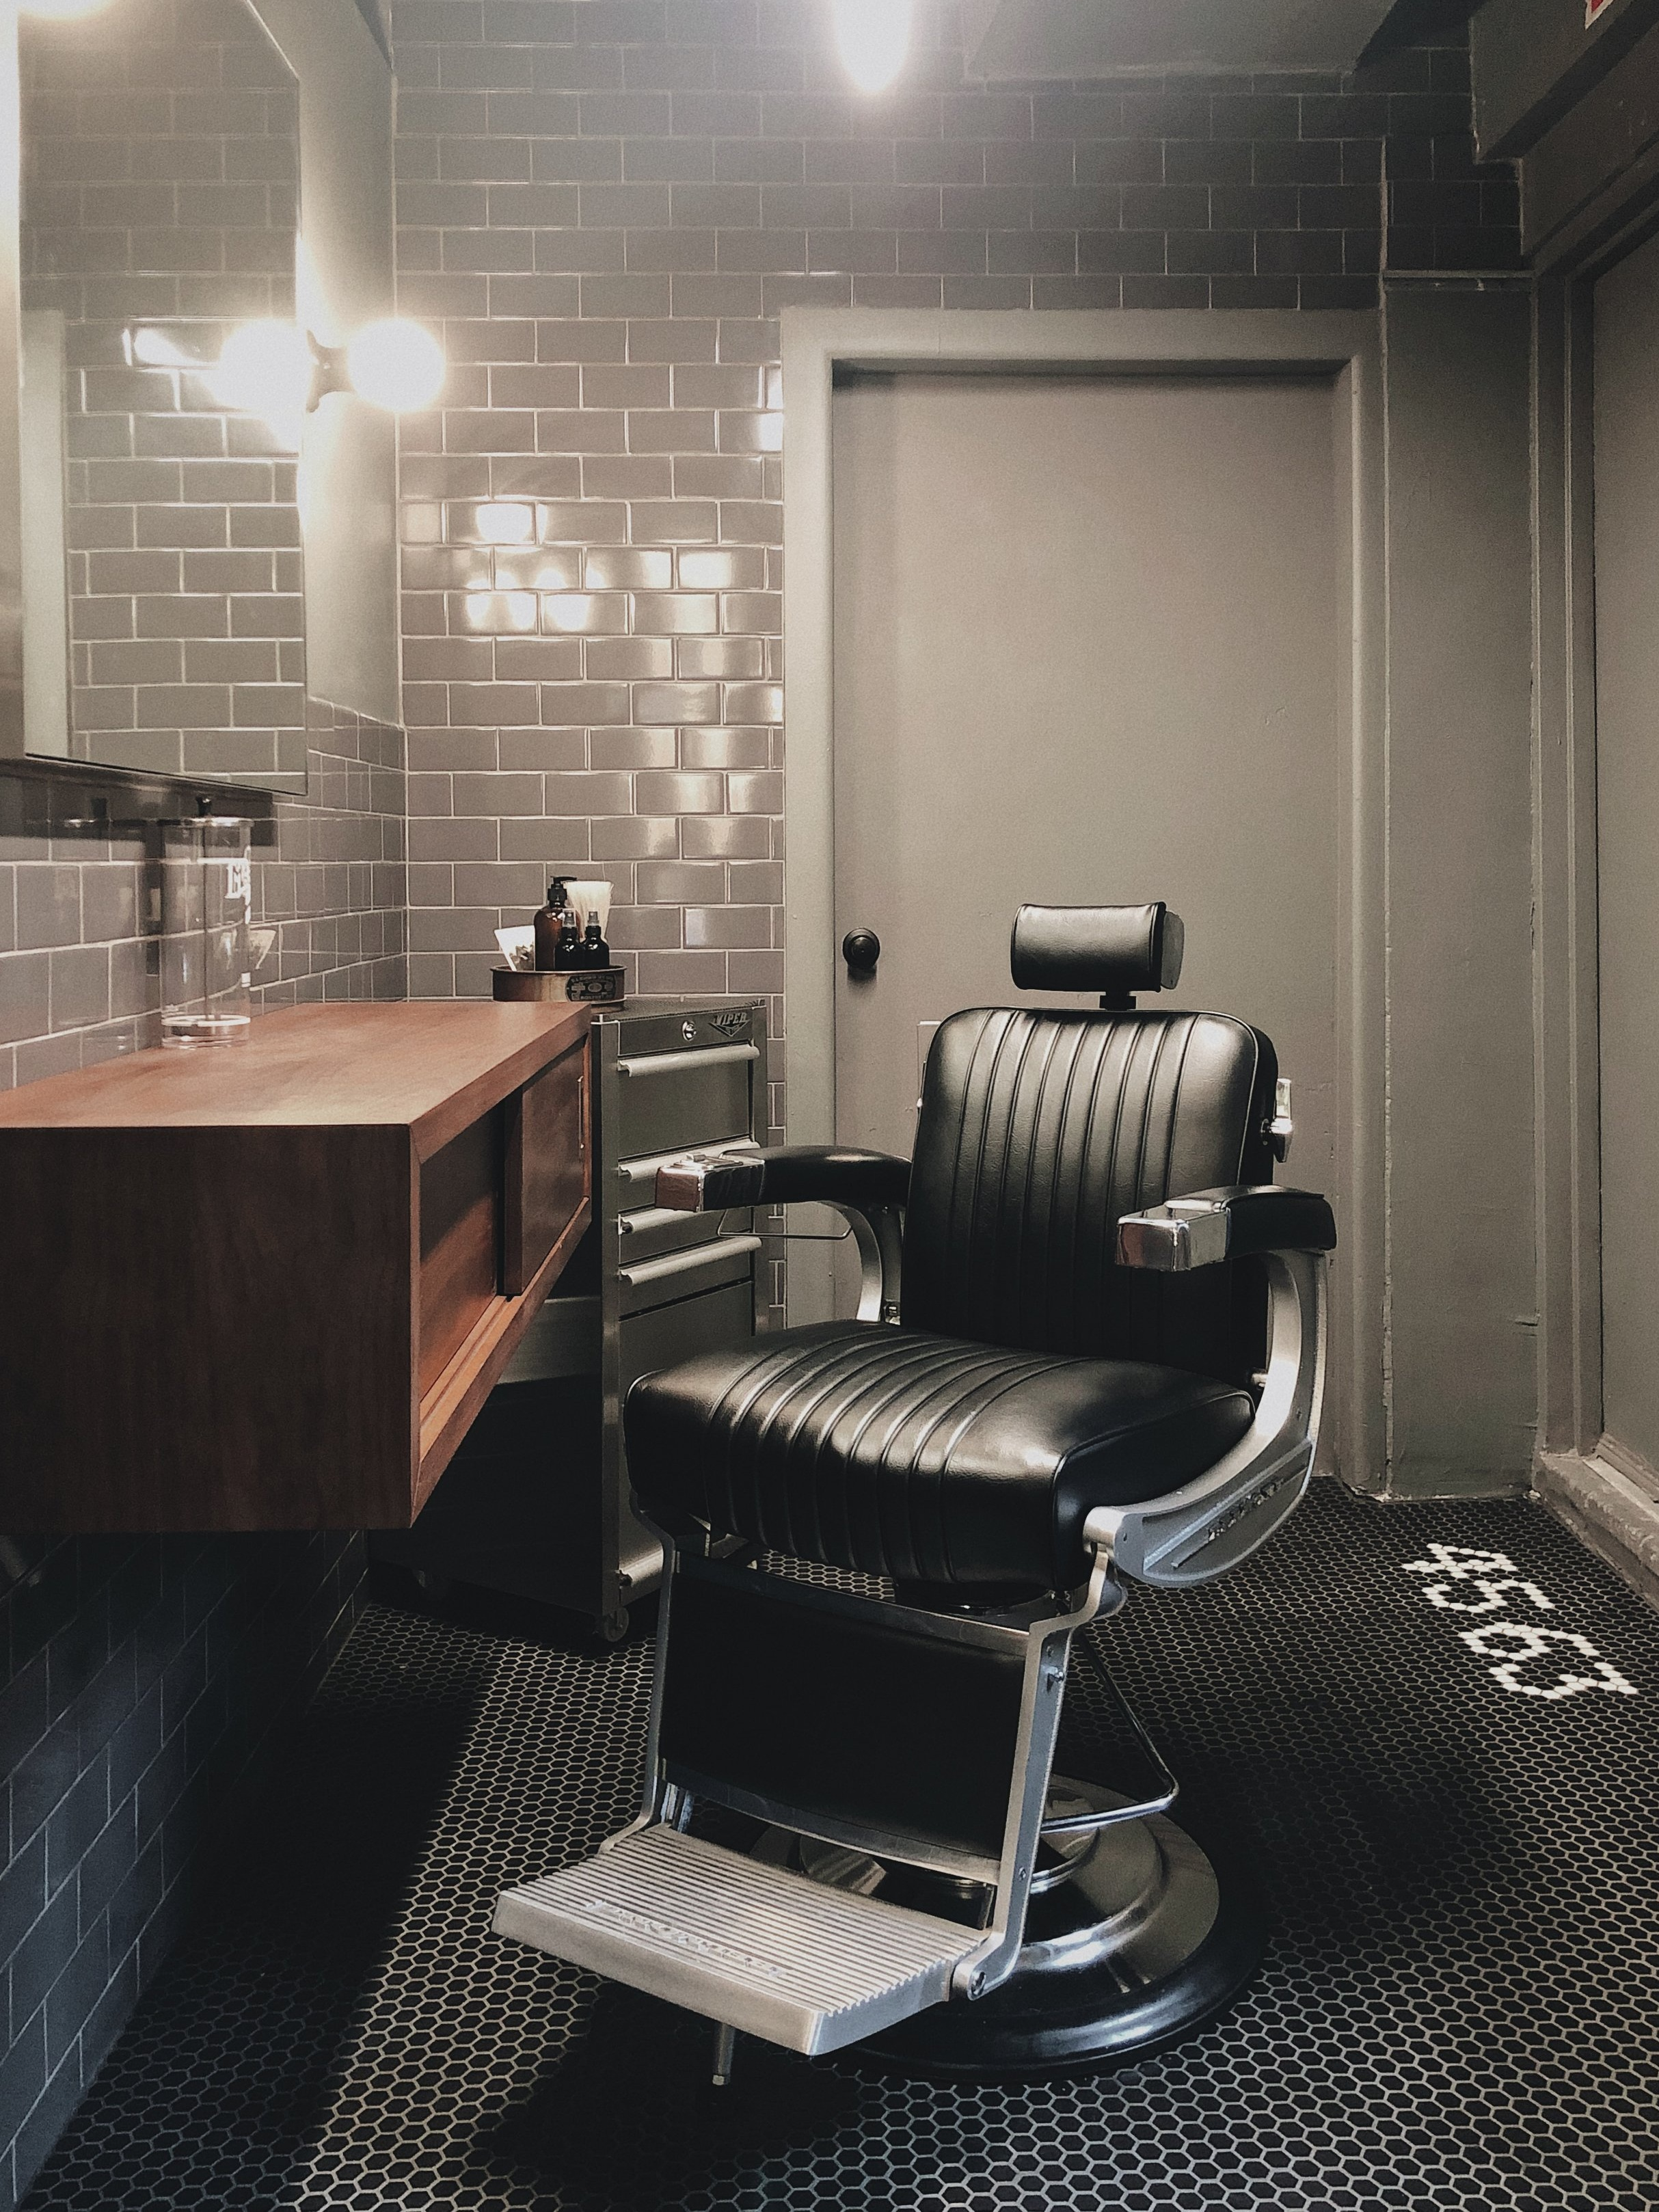 BABEOFBROOKLYN - WE'VE COLLABORATED WITH BROOKLYN BASED BRAND, BABE OF BROOKLYN, AND DESIGNED A ONE-CHAIR BARBERSHOP IN OUR SHOP.